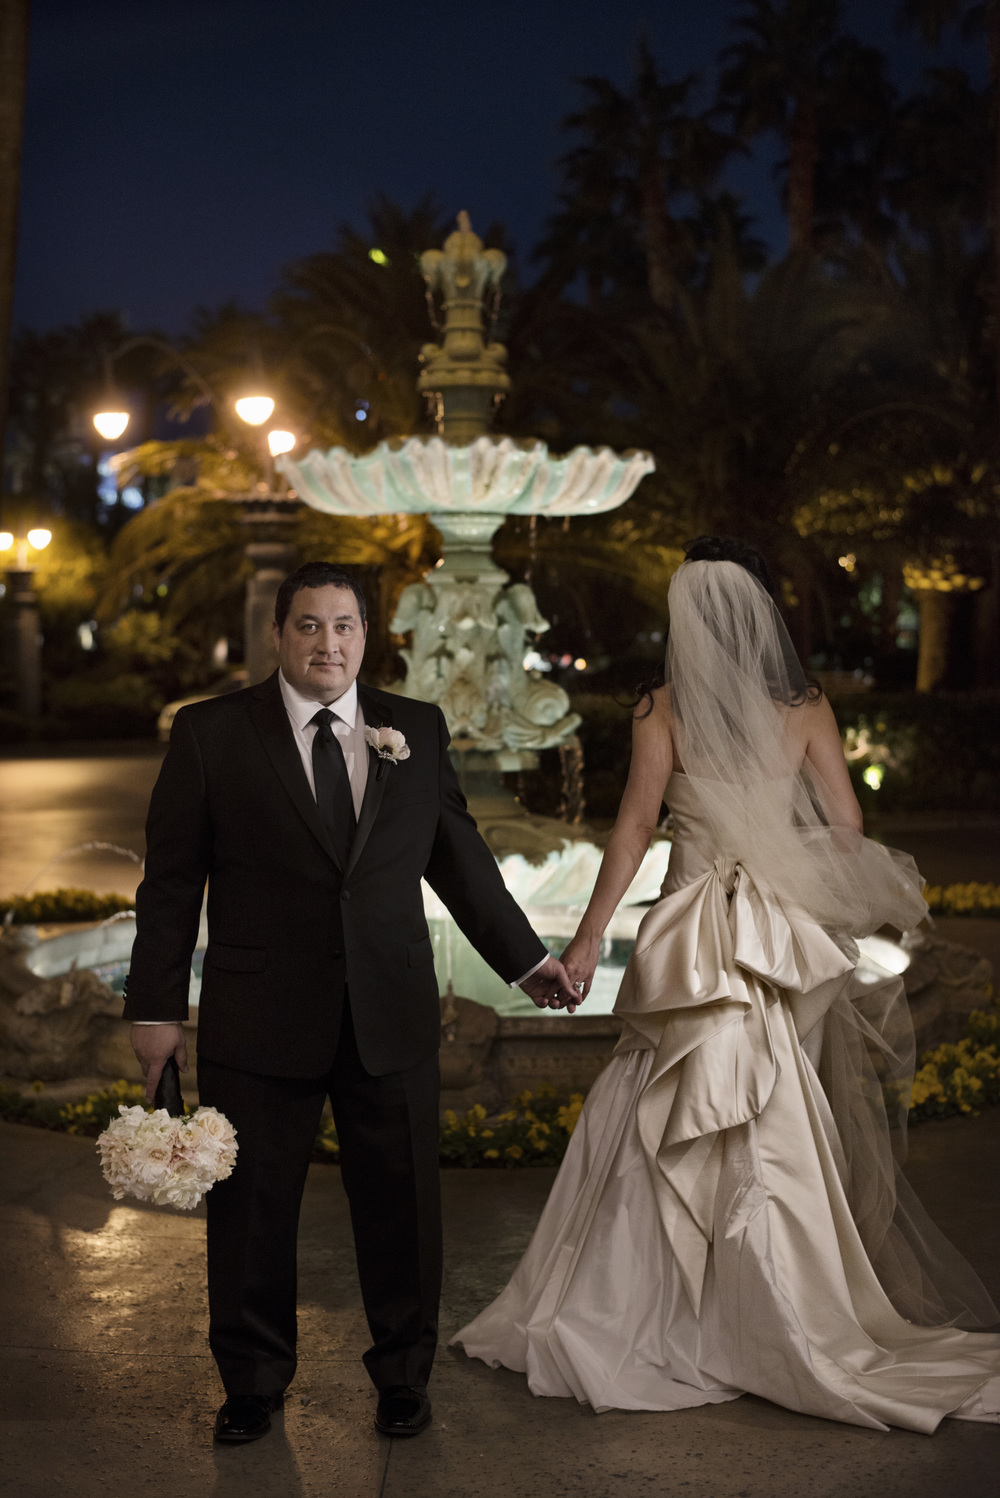 The back of the dress featured an oversized bow for extra drama - An Intimate Wedding at Four Seasons Las Vegas.